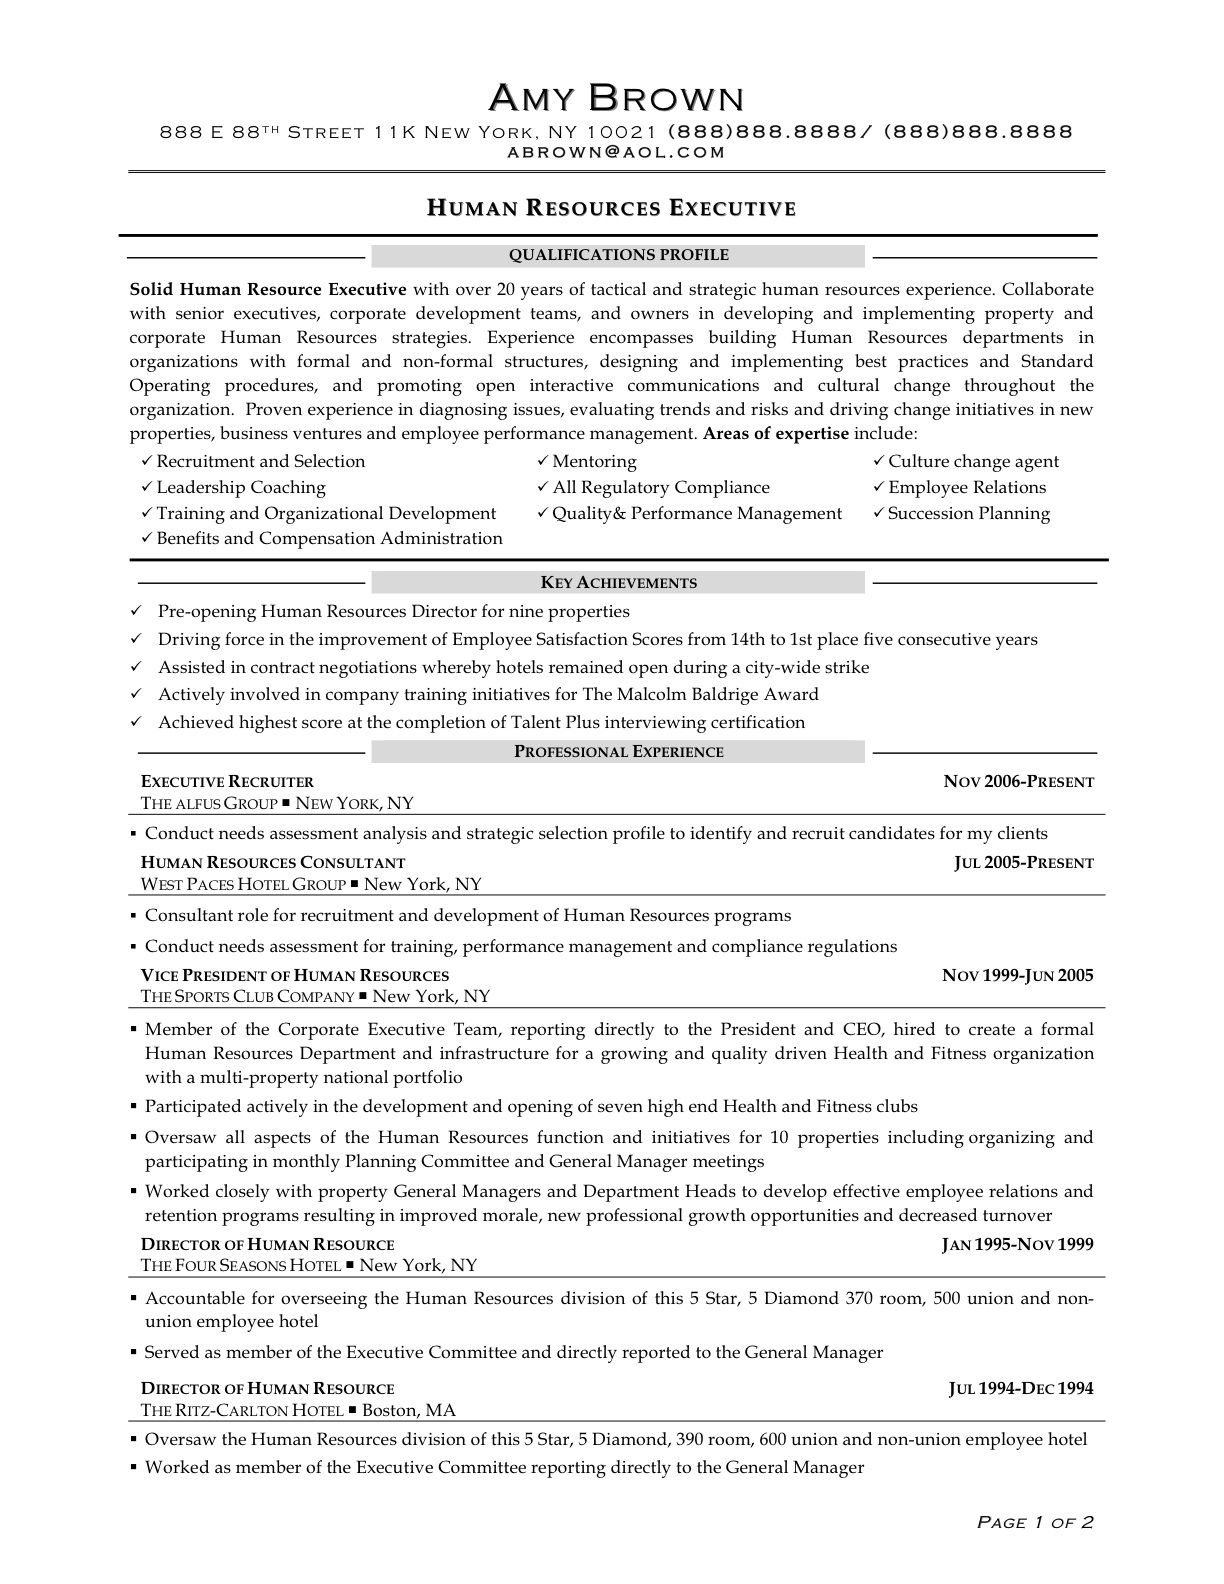 career objective examples human resourc do need resume for hrm office administrator free Resume Career Objective Resume For Hrm